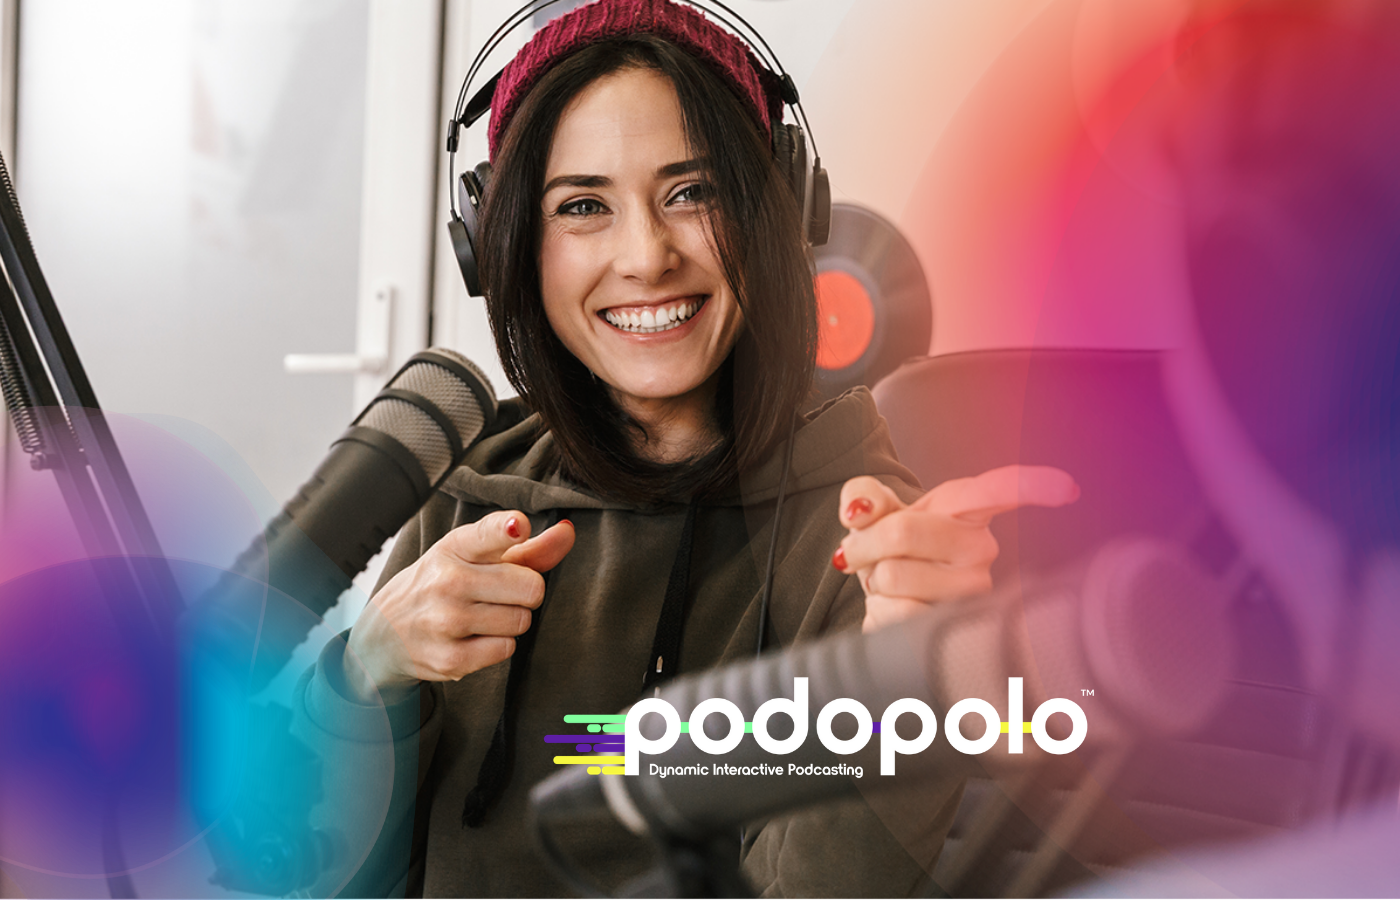 Is Now the Time to Start Your Podcast? 4 Hacks to Make it Profitable.